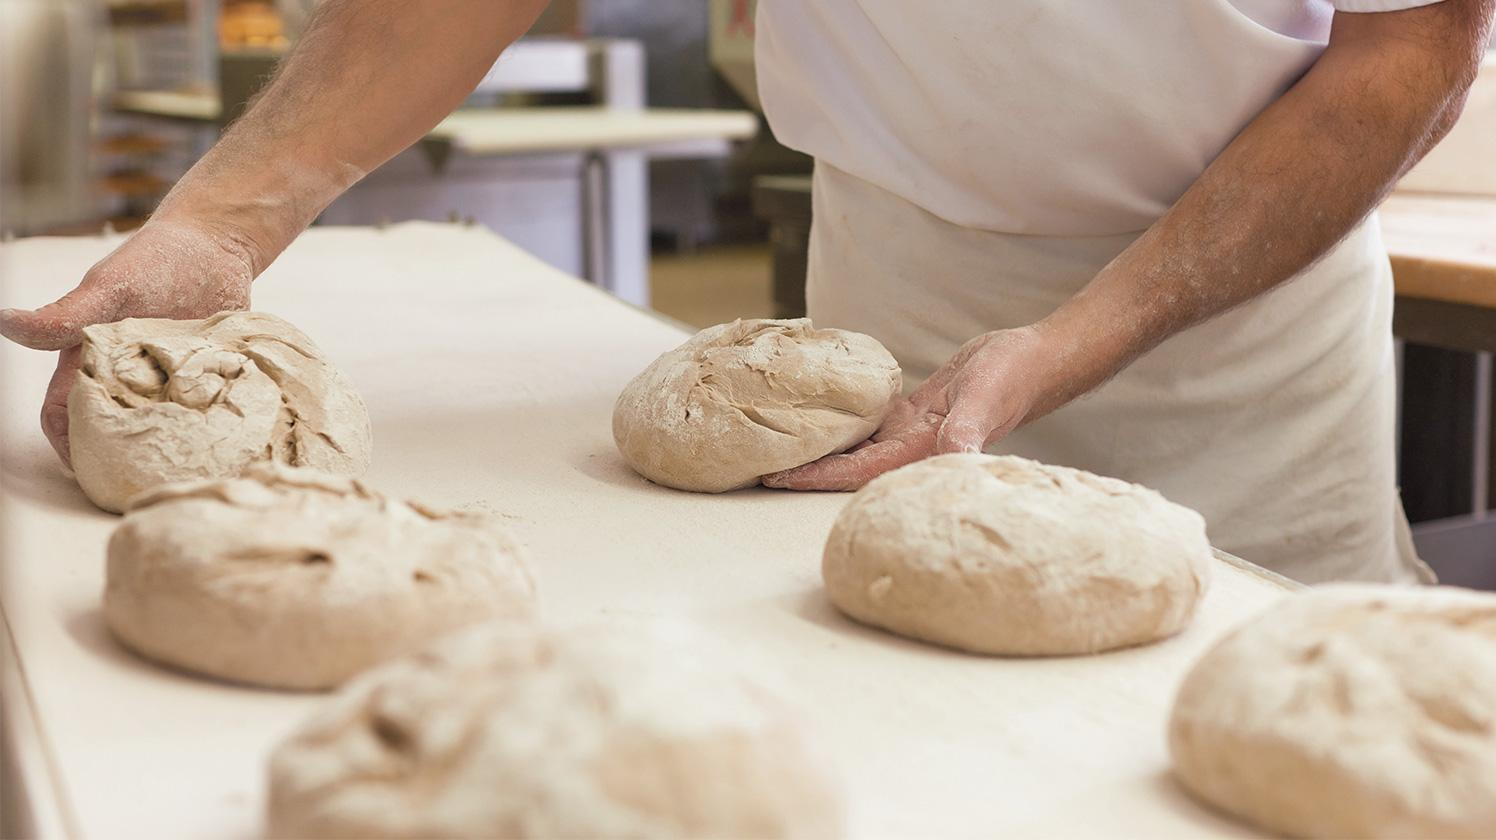 BRITA water coffee shop and bakery making bread